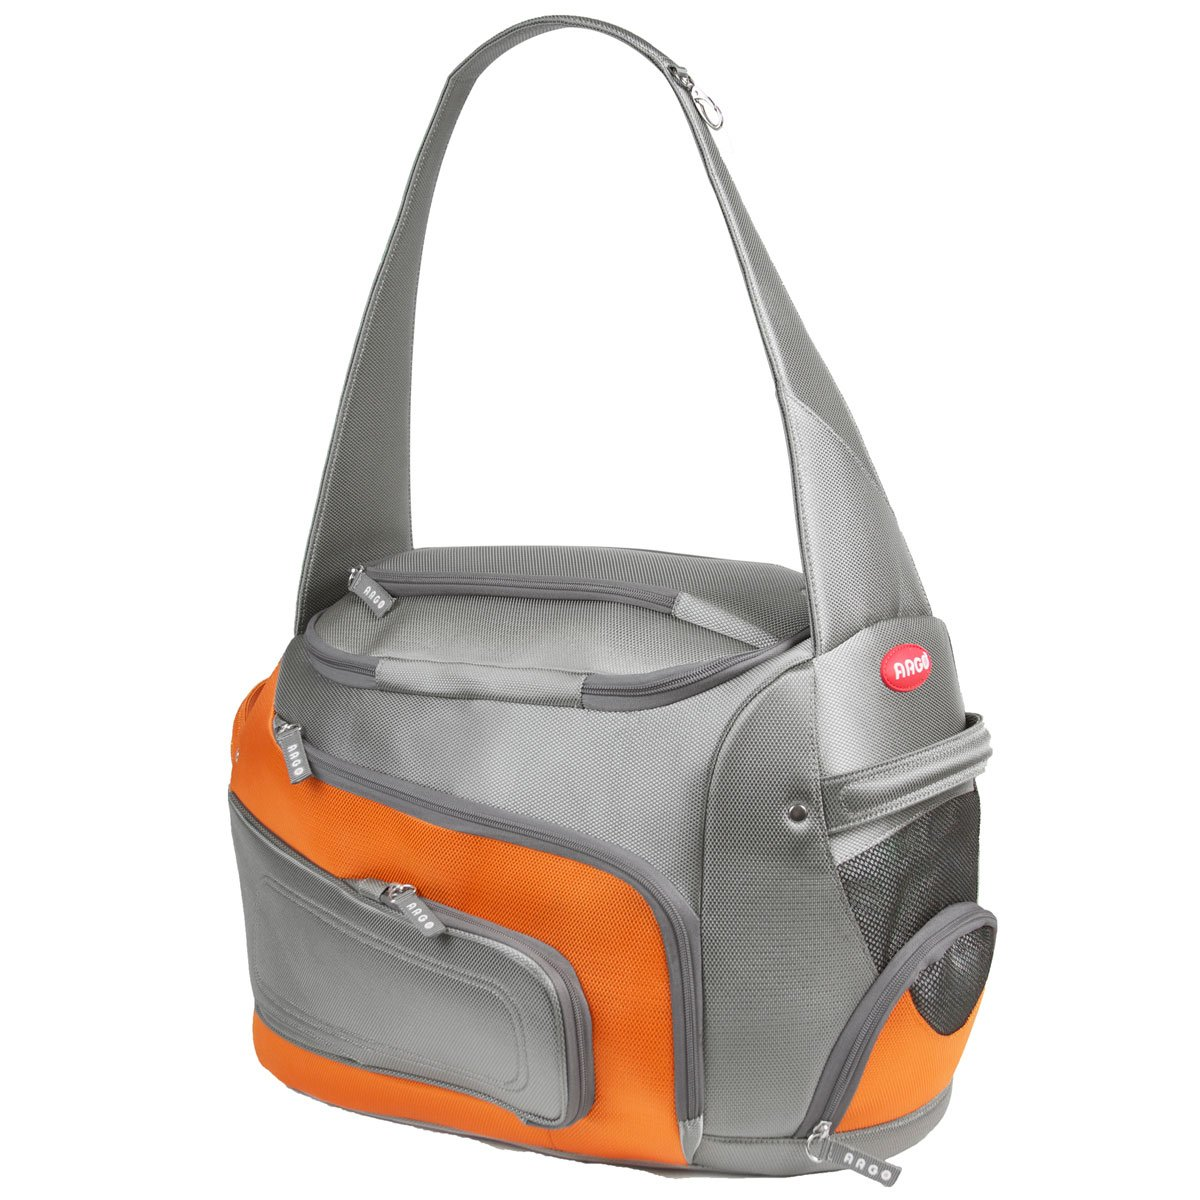 Argo By Teafco Duff-O Airline Approved (20'' Large) Pet Carrier - Tango Orange